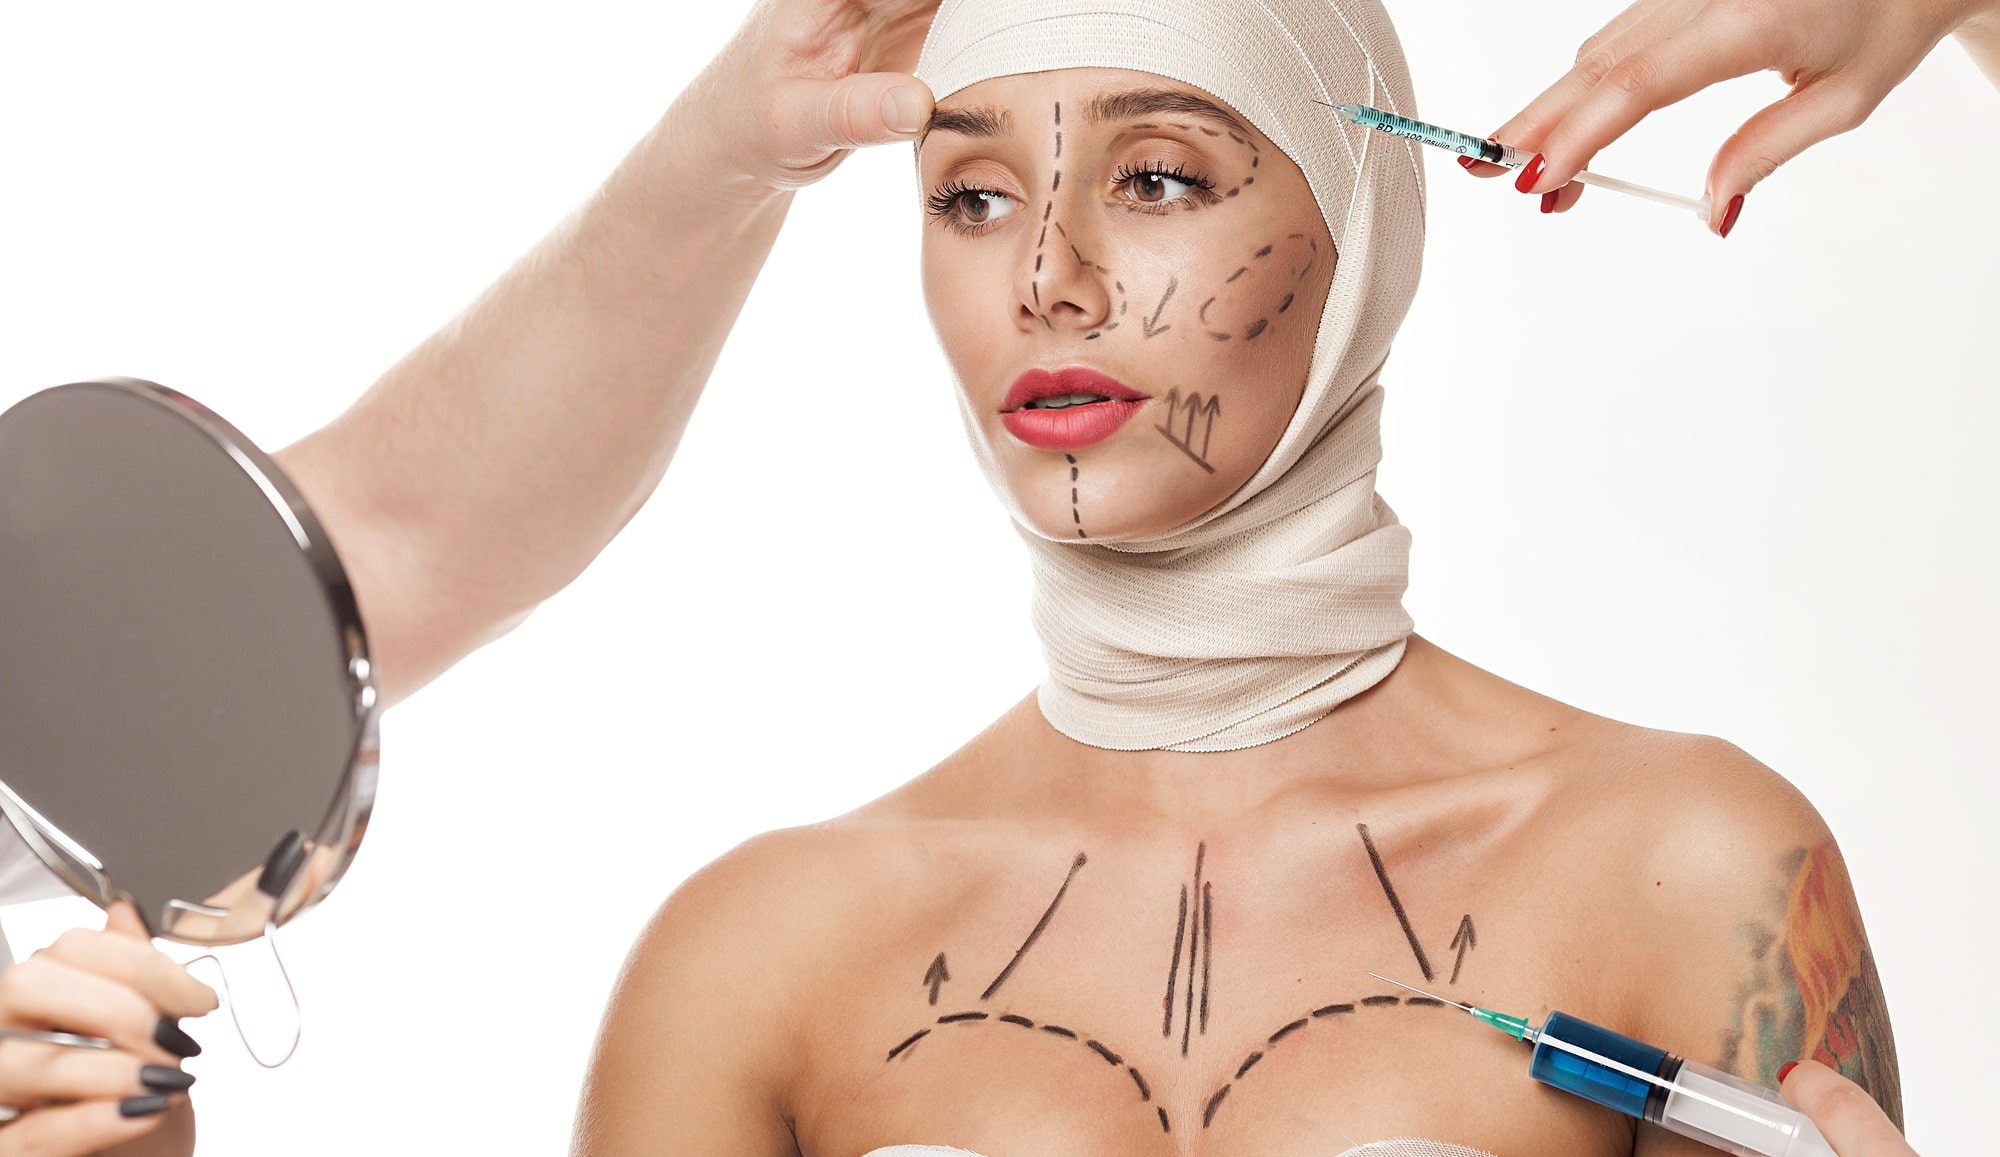 A look at popular cosmetic surgery trends around the world